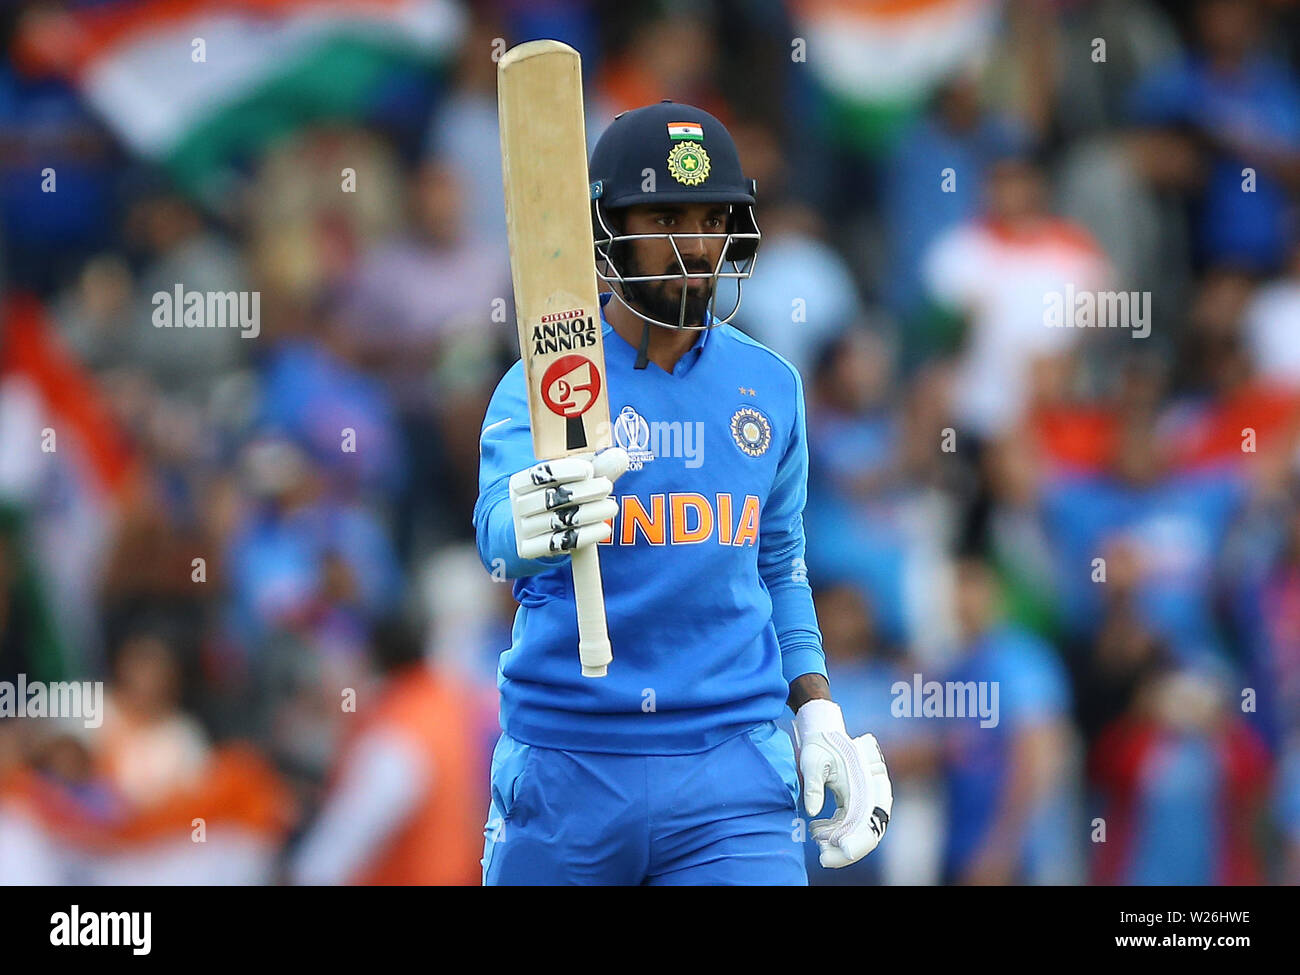 India's KL Rahul celebrates his century during the ICC Cricket World Cup group stage match at Headingley, Leeds. Stock Photo